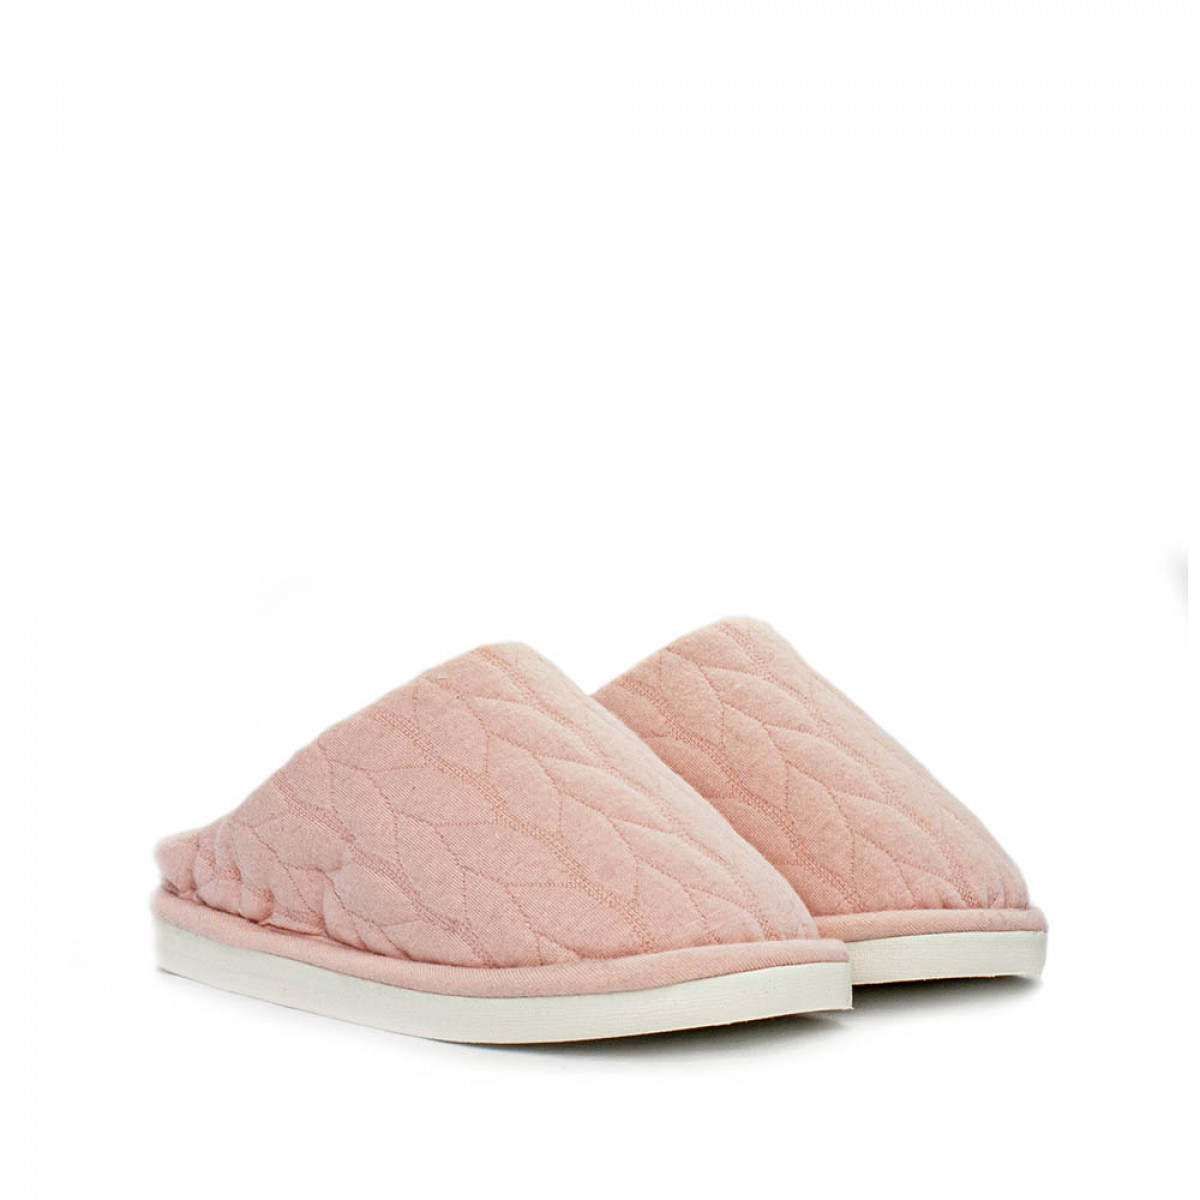 Kid's home slippers FAMILY, Pale pink